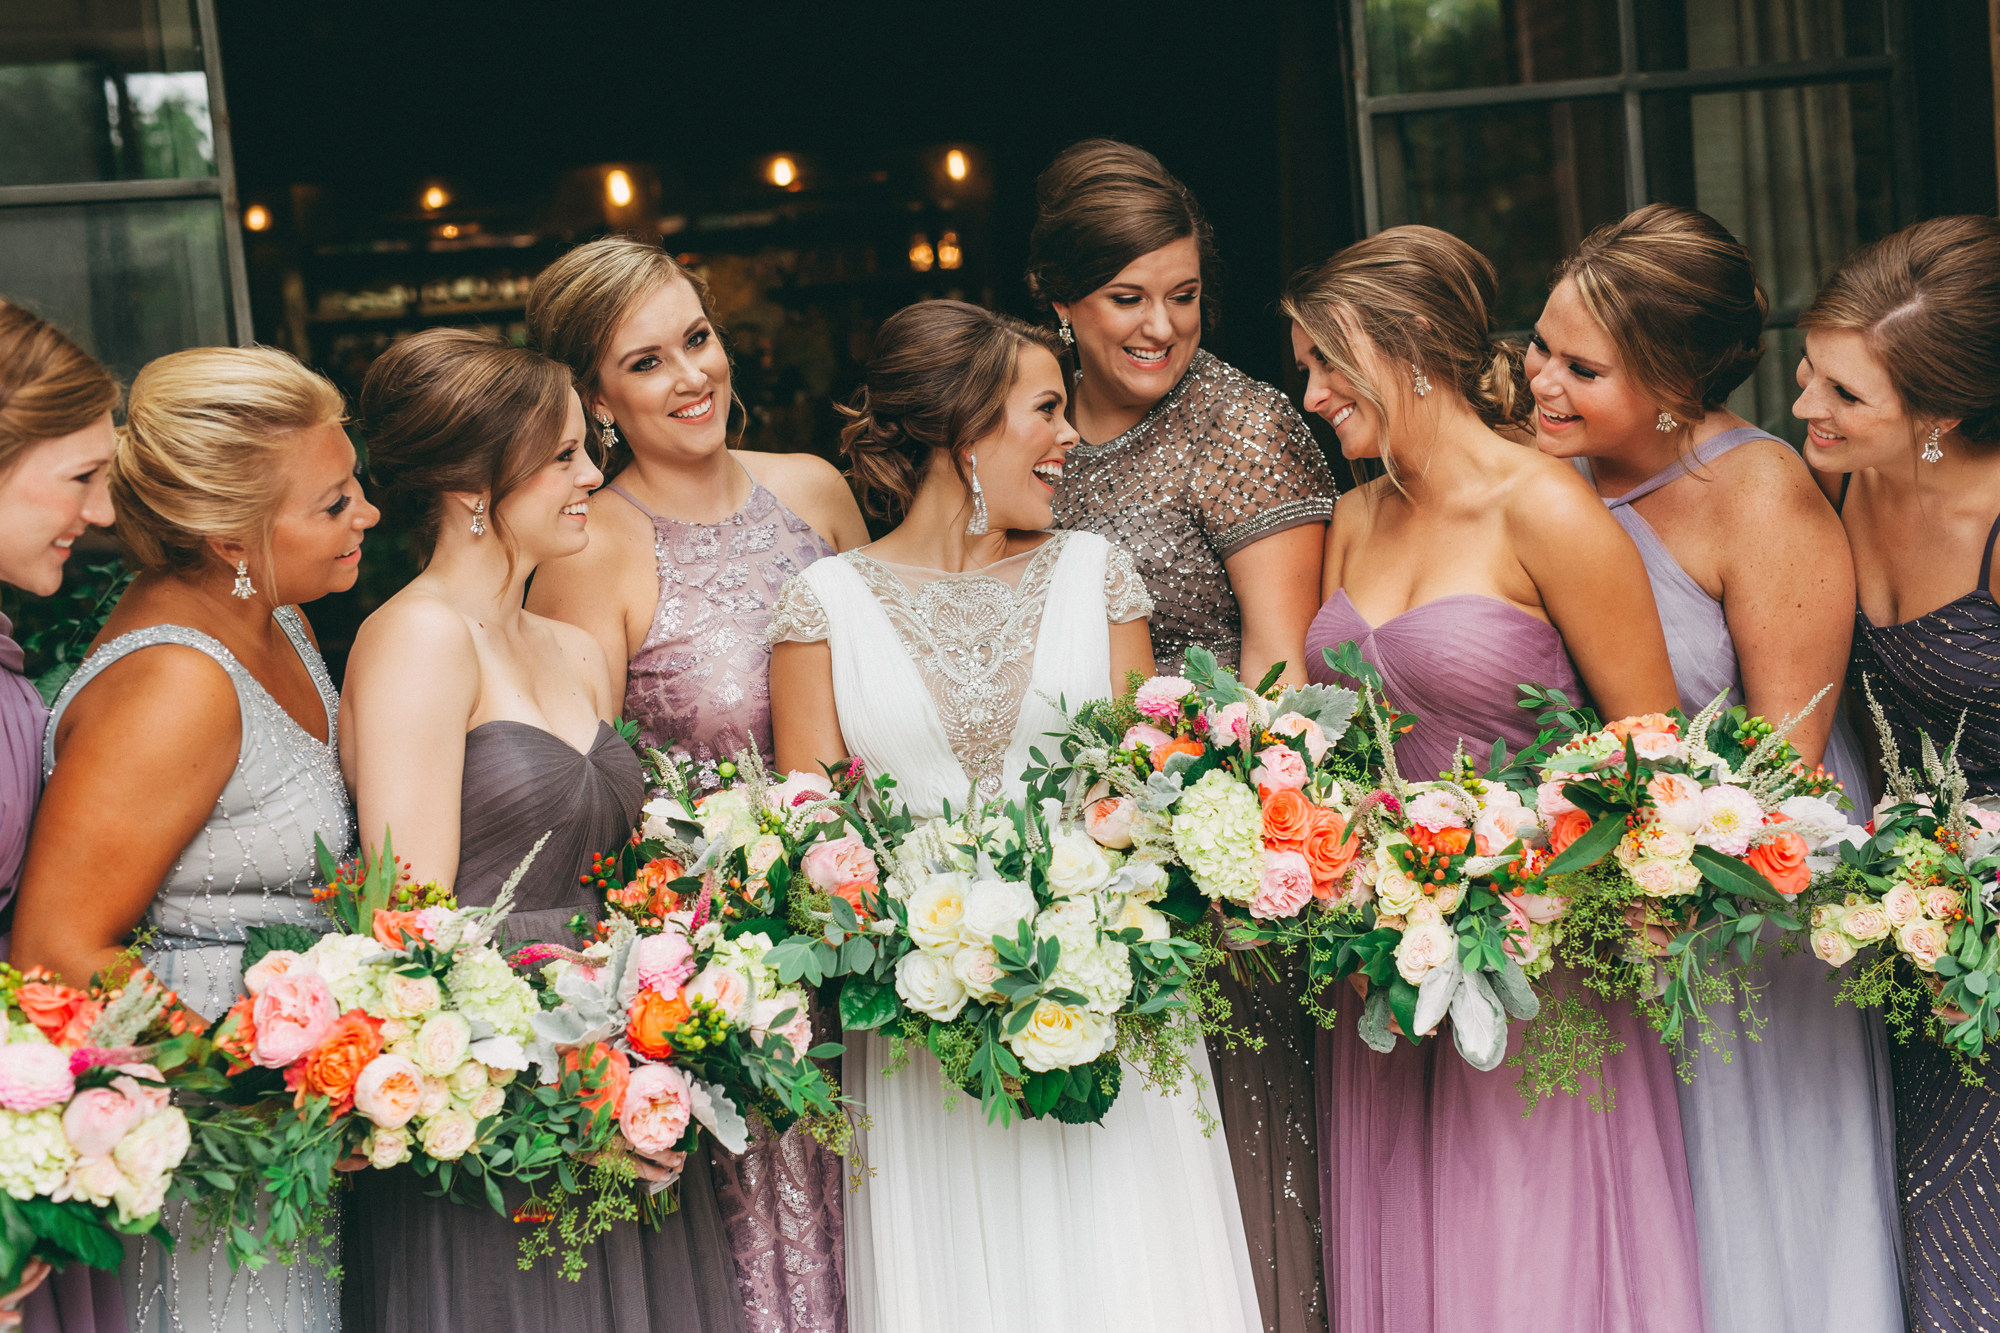 798c49d3cd1c How to mix & match bridesmaids dresses / Mix & Match Bridesmaids Dresses